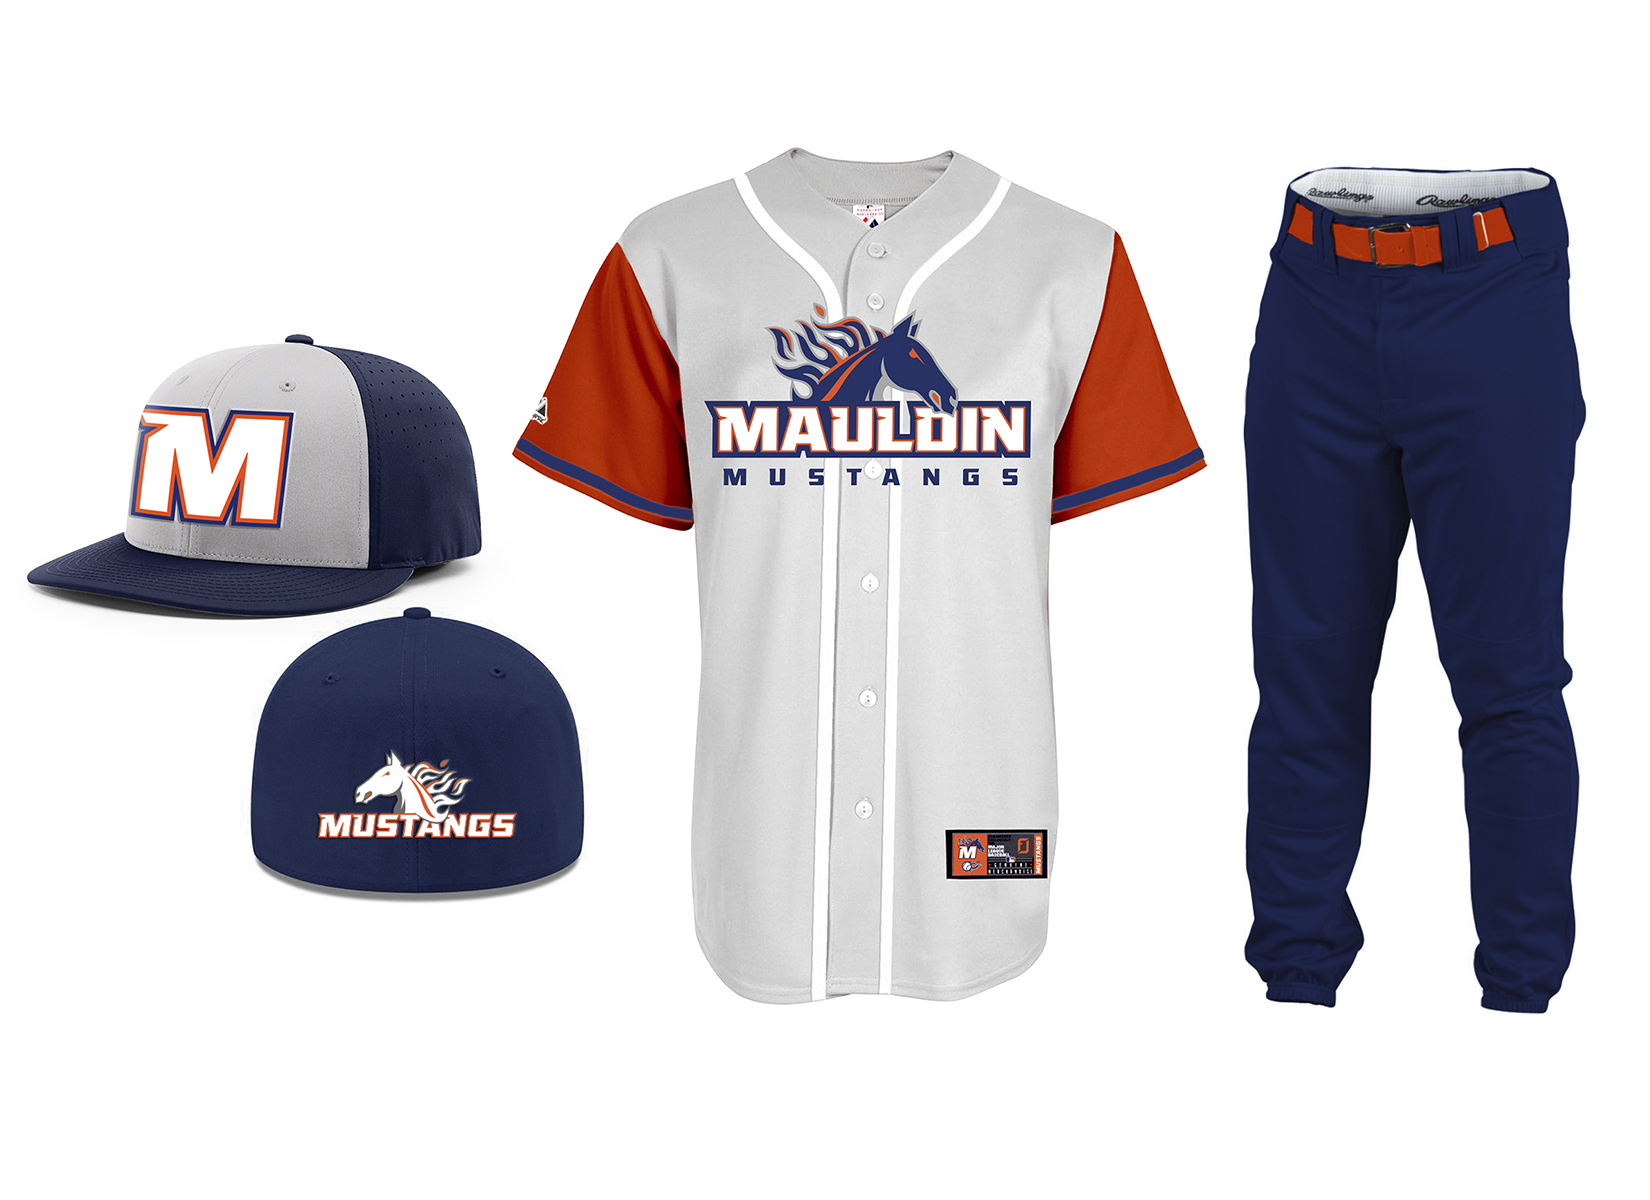 high-school-baseball-team-design-8.jpg